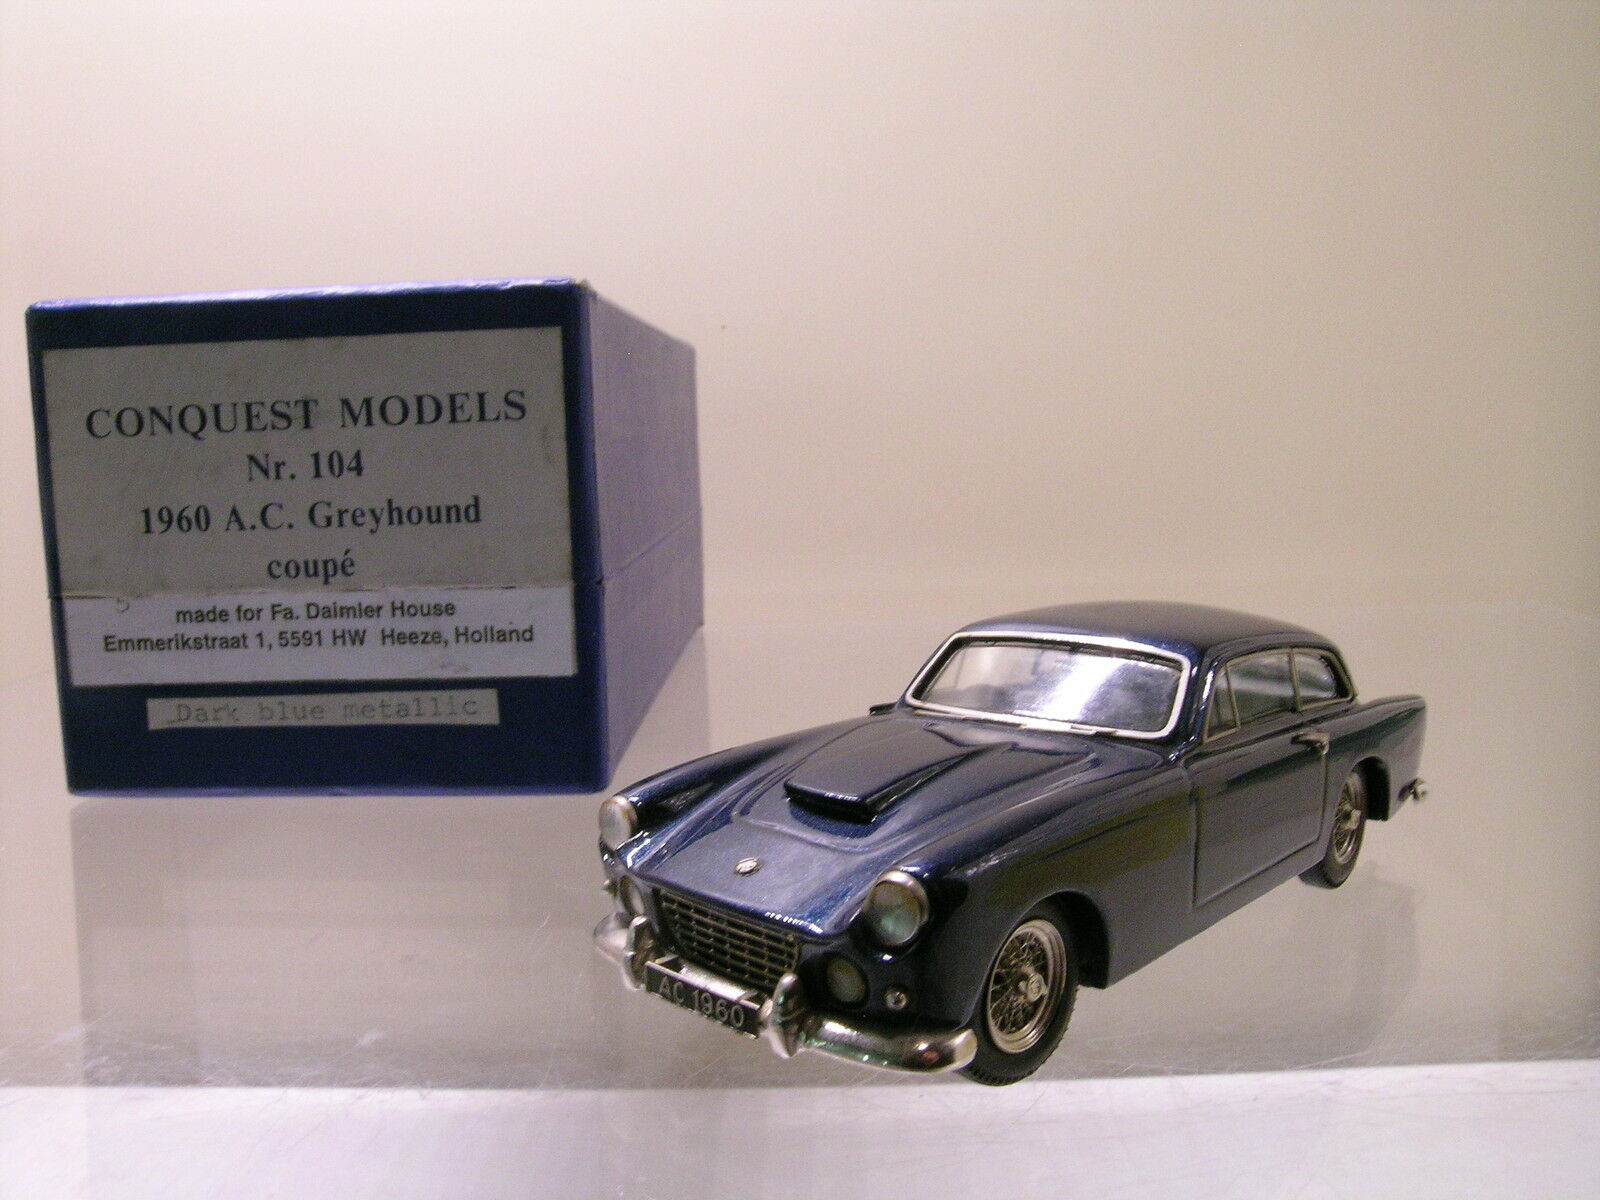 CONQUEST MODELS No.104 A.C. grigioHOUND COUPE 1960 blu MET. HAND-BUILT SCALE1:43